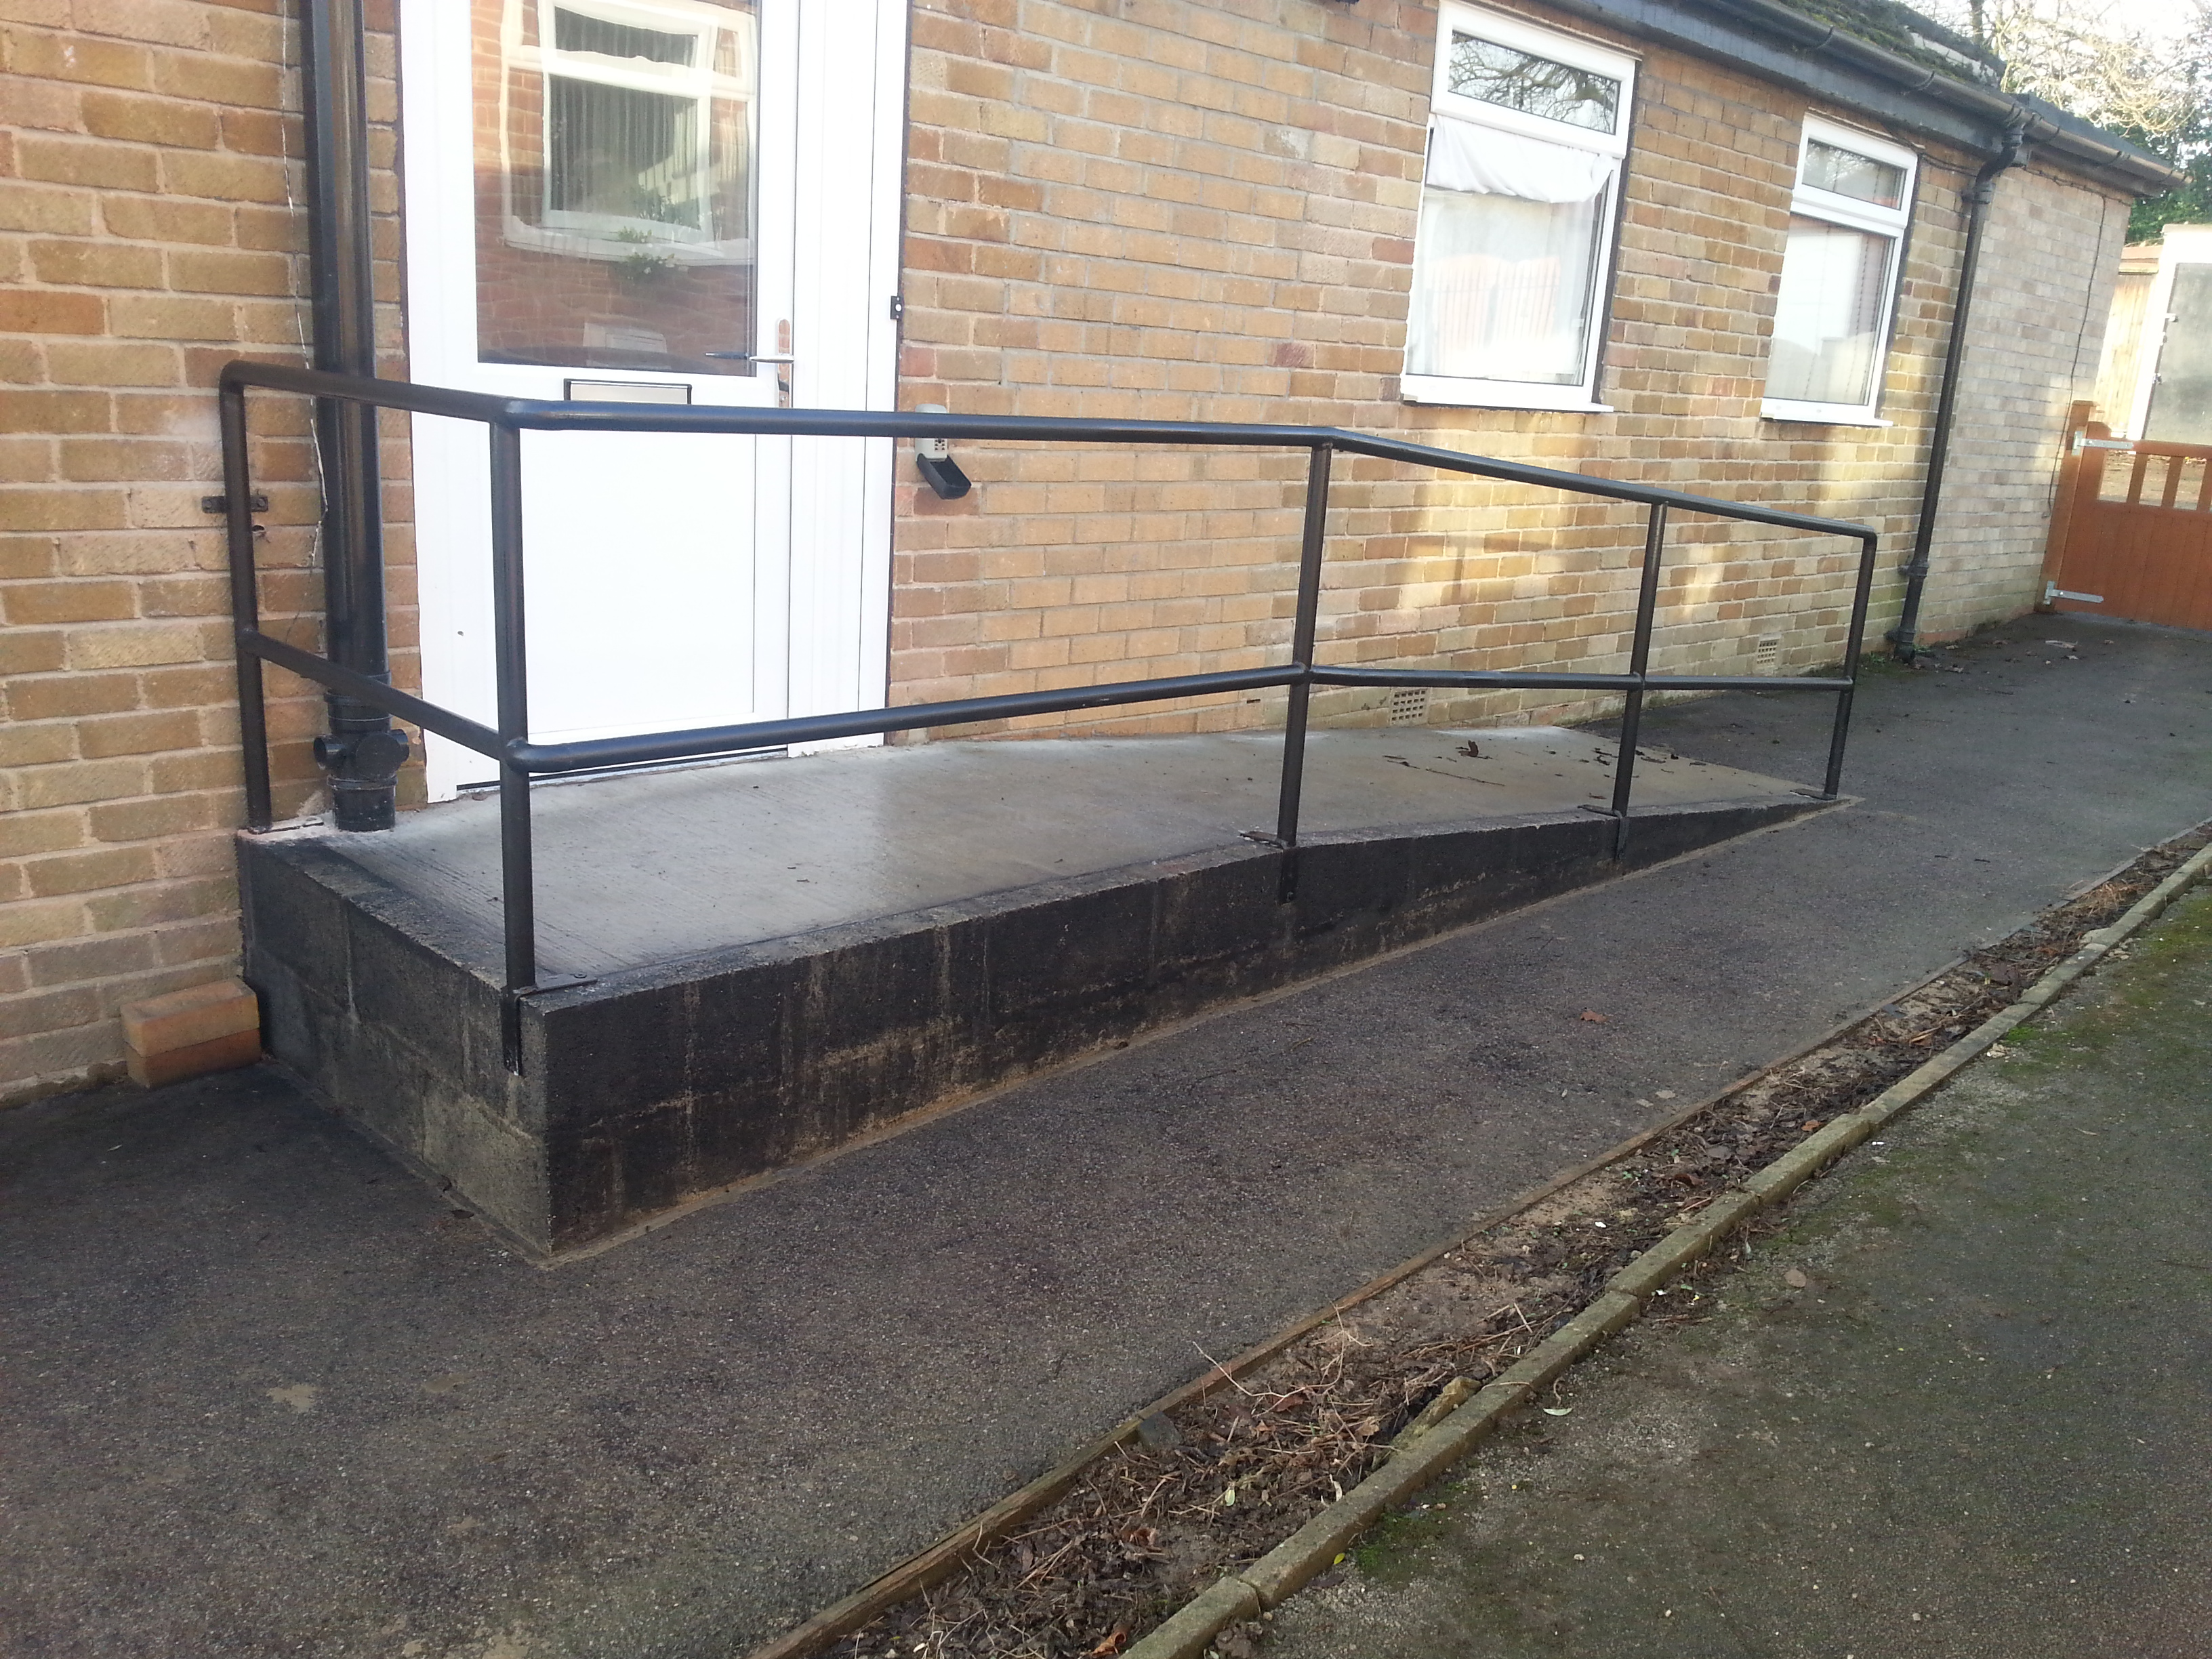 tubular_steel_handrail_for_access_ramp